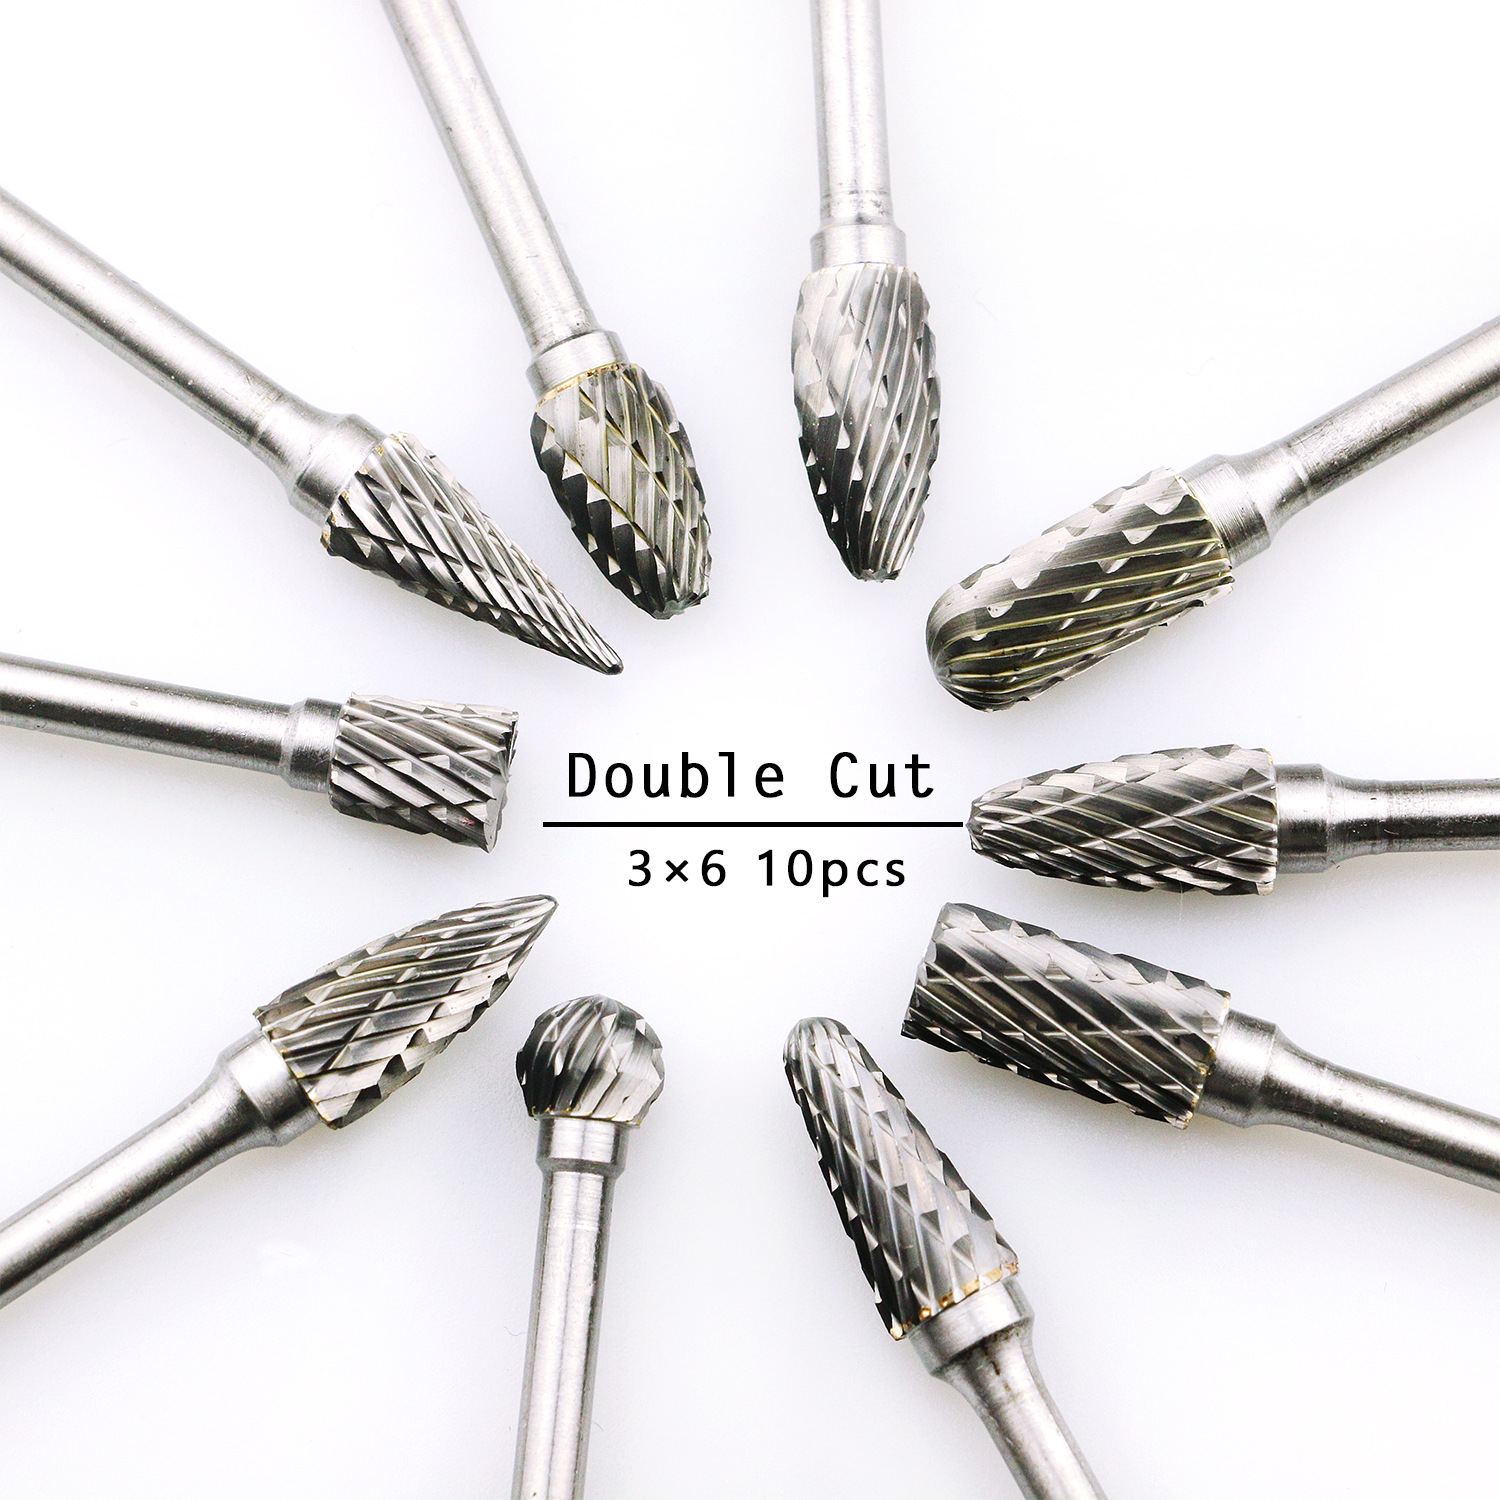 10pcs Single Or Double Cut Tungsten Carbide Rotary Burr Set Metal Carving Drilling Polishing Bits With 3mm Shank For Die Grinder